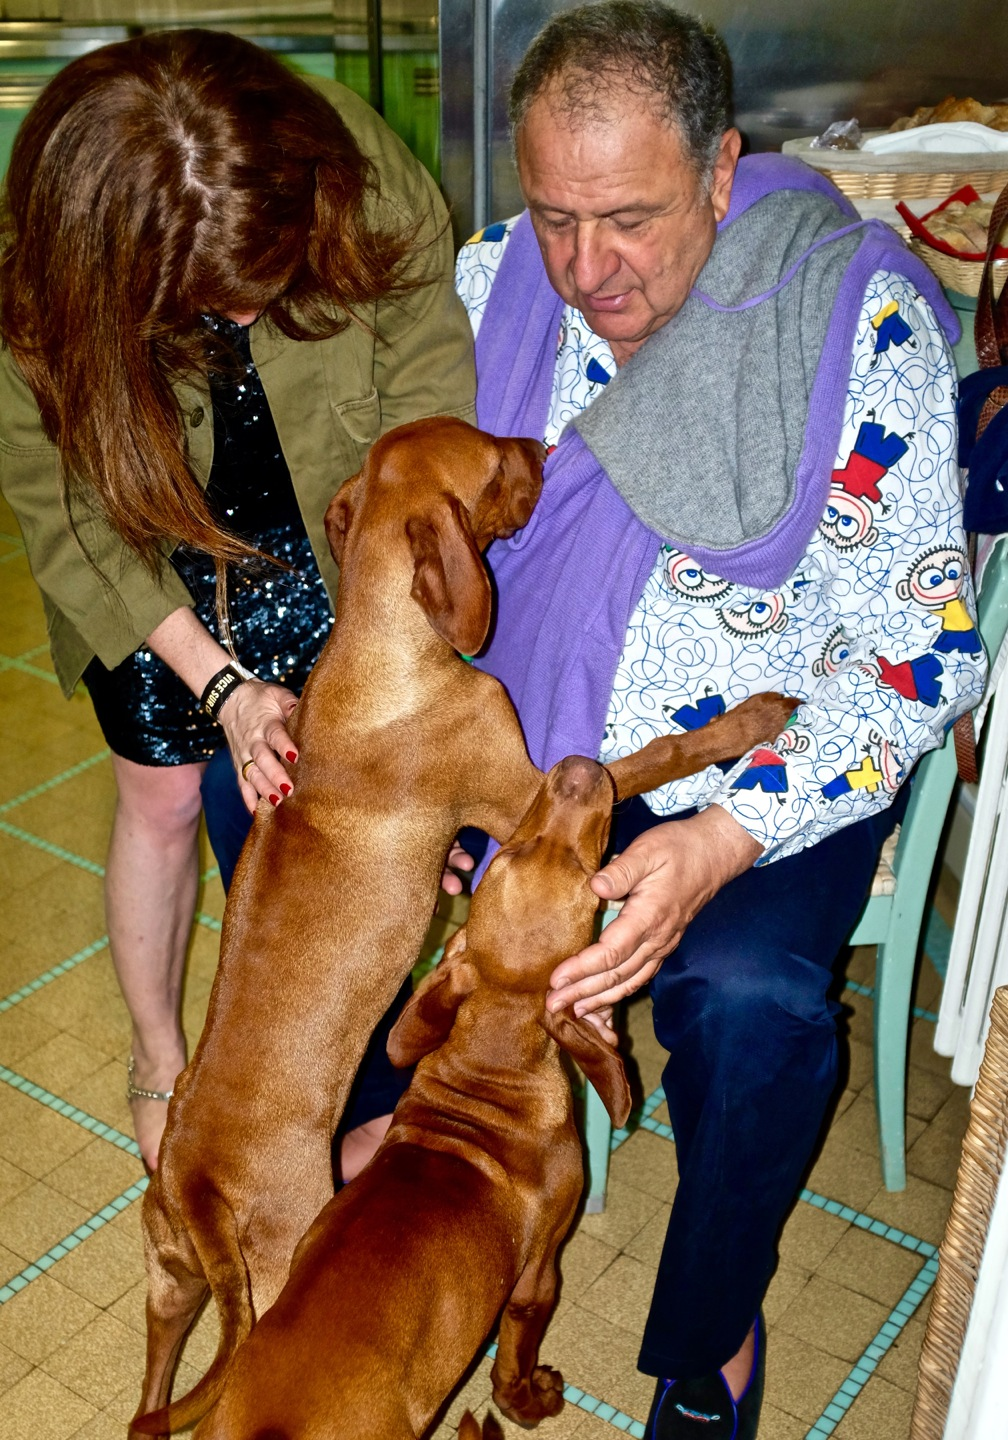 Jean Pigozzi with dogs in printed shirt